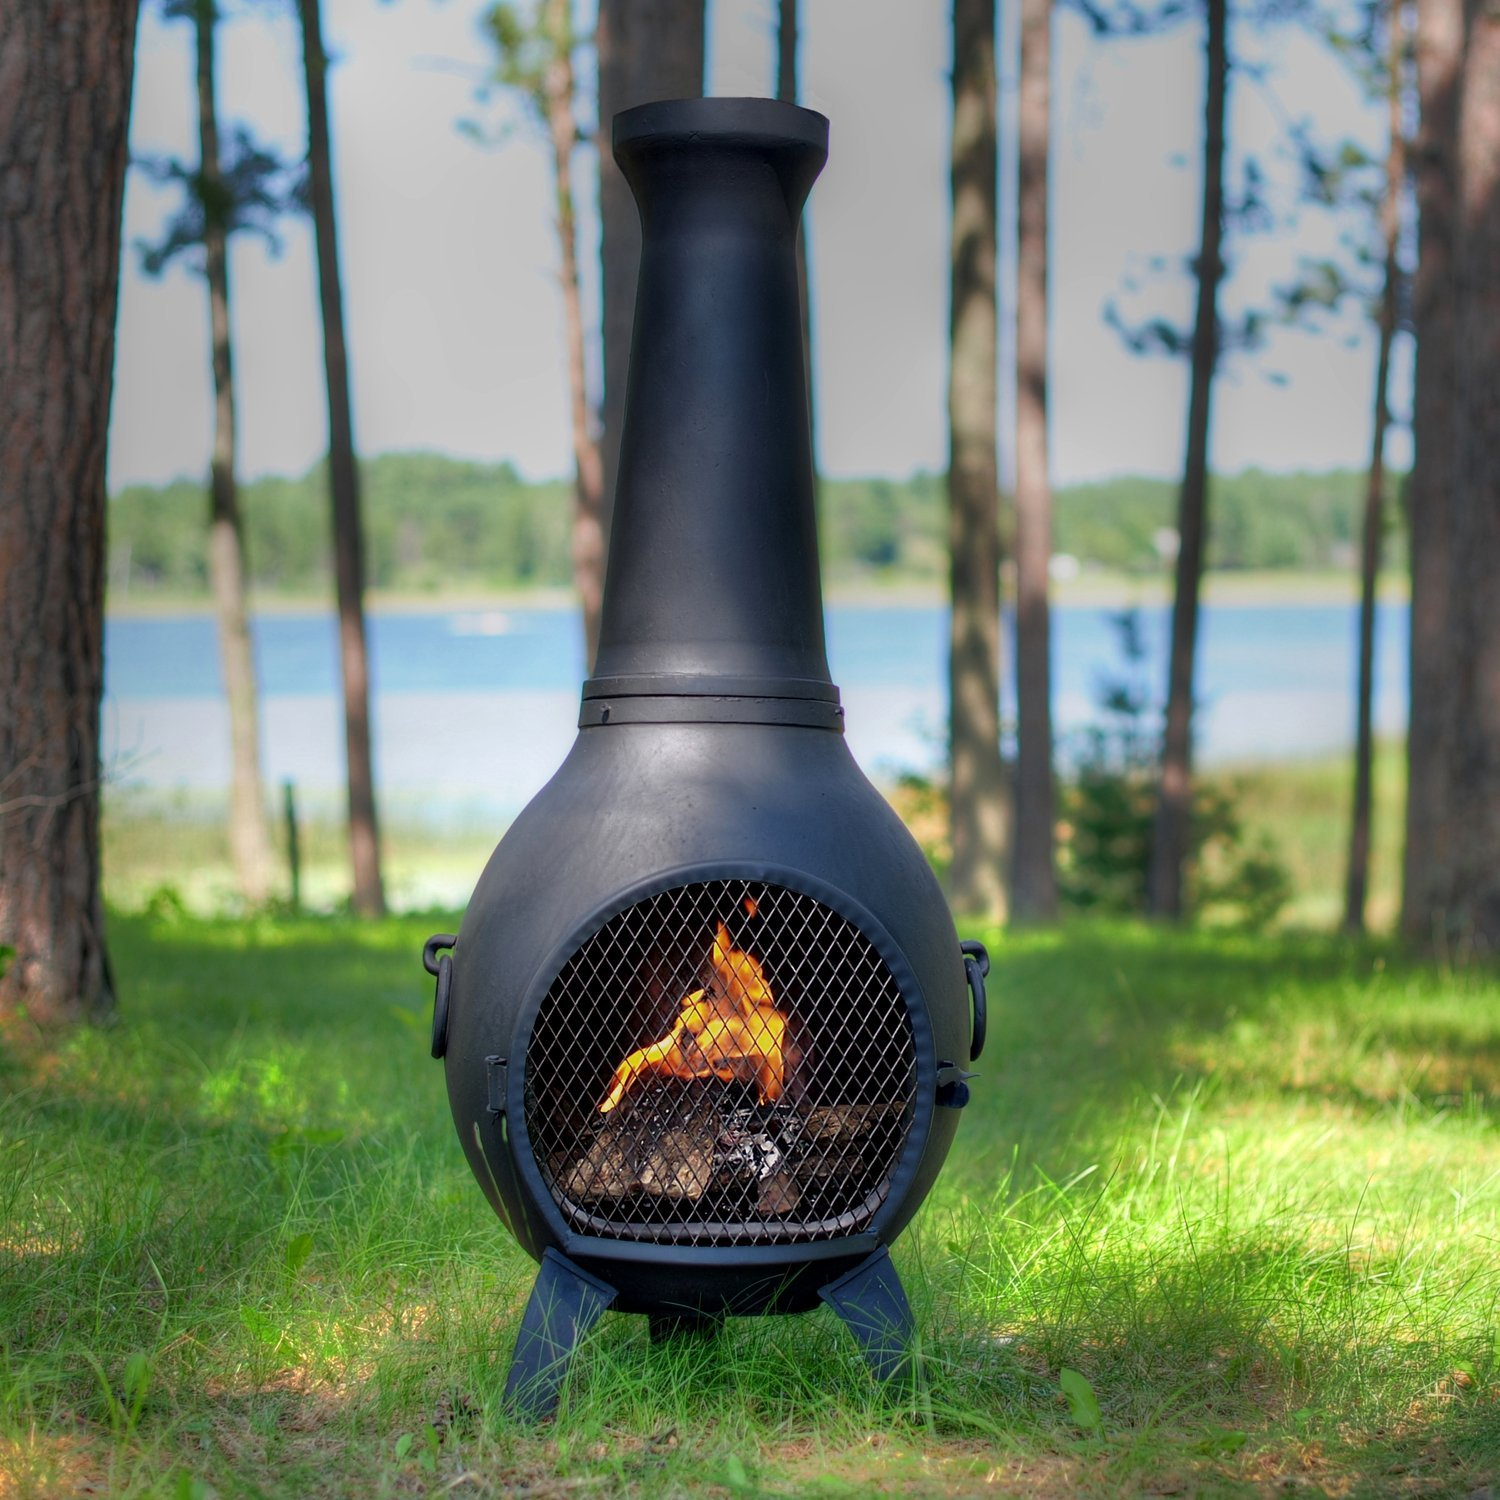 industrial style chiminea in a green garden on grass